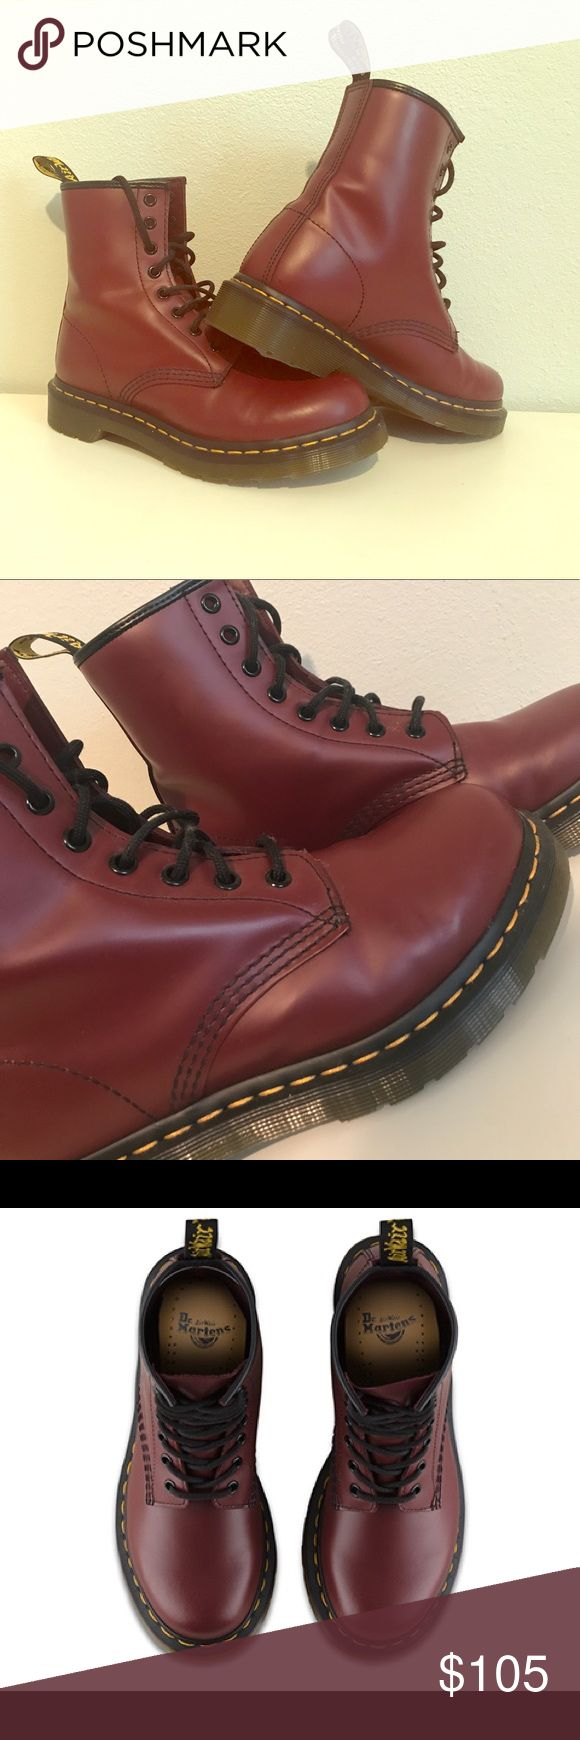 Dr. Marten's Cherry Red Boots - Barely Worn! Women's 1460 Smooth Cherry Red (beautiful maroon) Dr. Marten's, worn only a handful of times. Size 7. Dr. Martens Shoes Combat & Moto Boots